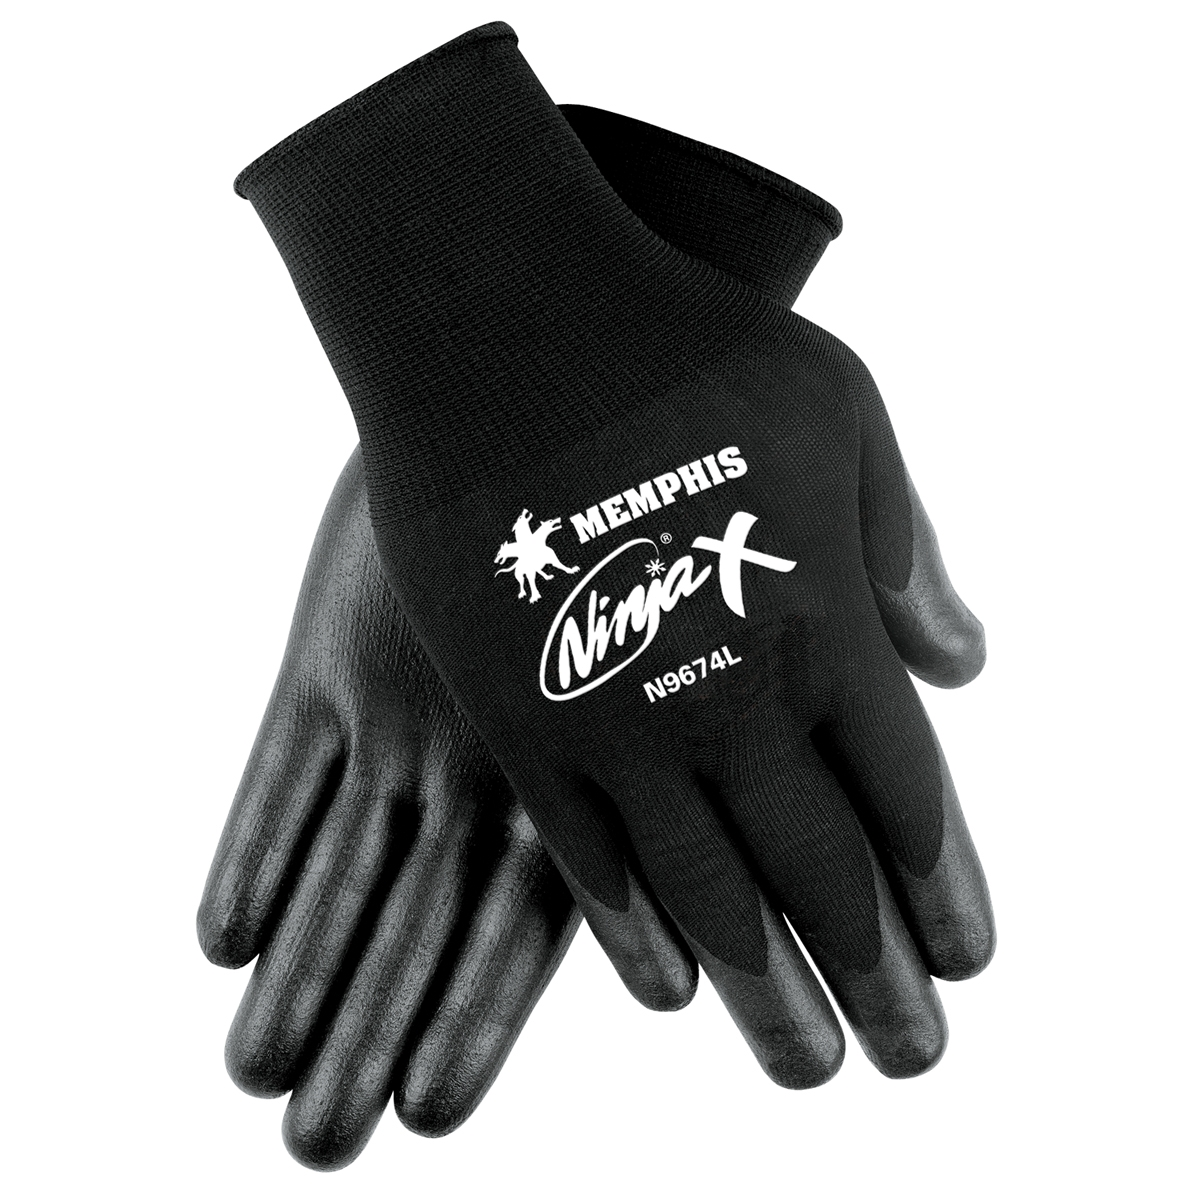 N9674 : MCR Safety Ninja X Gloves